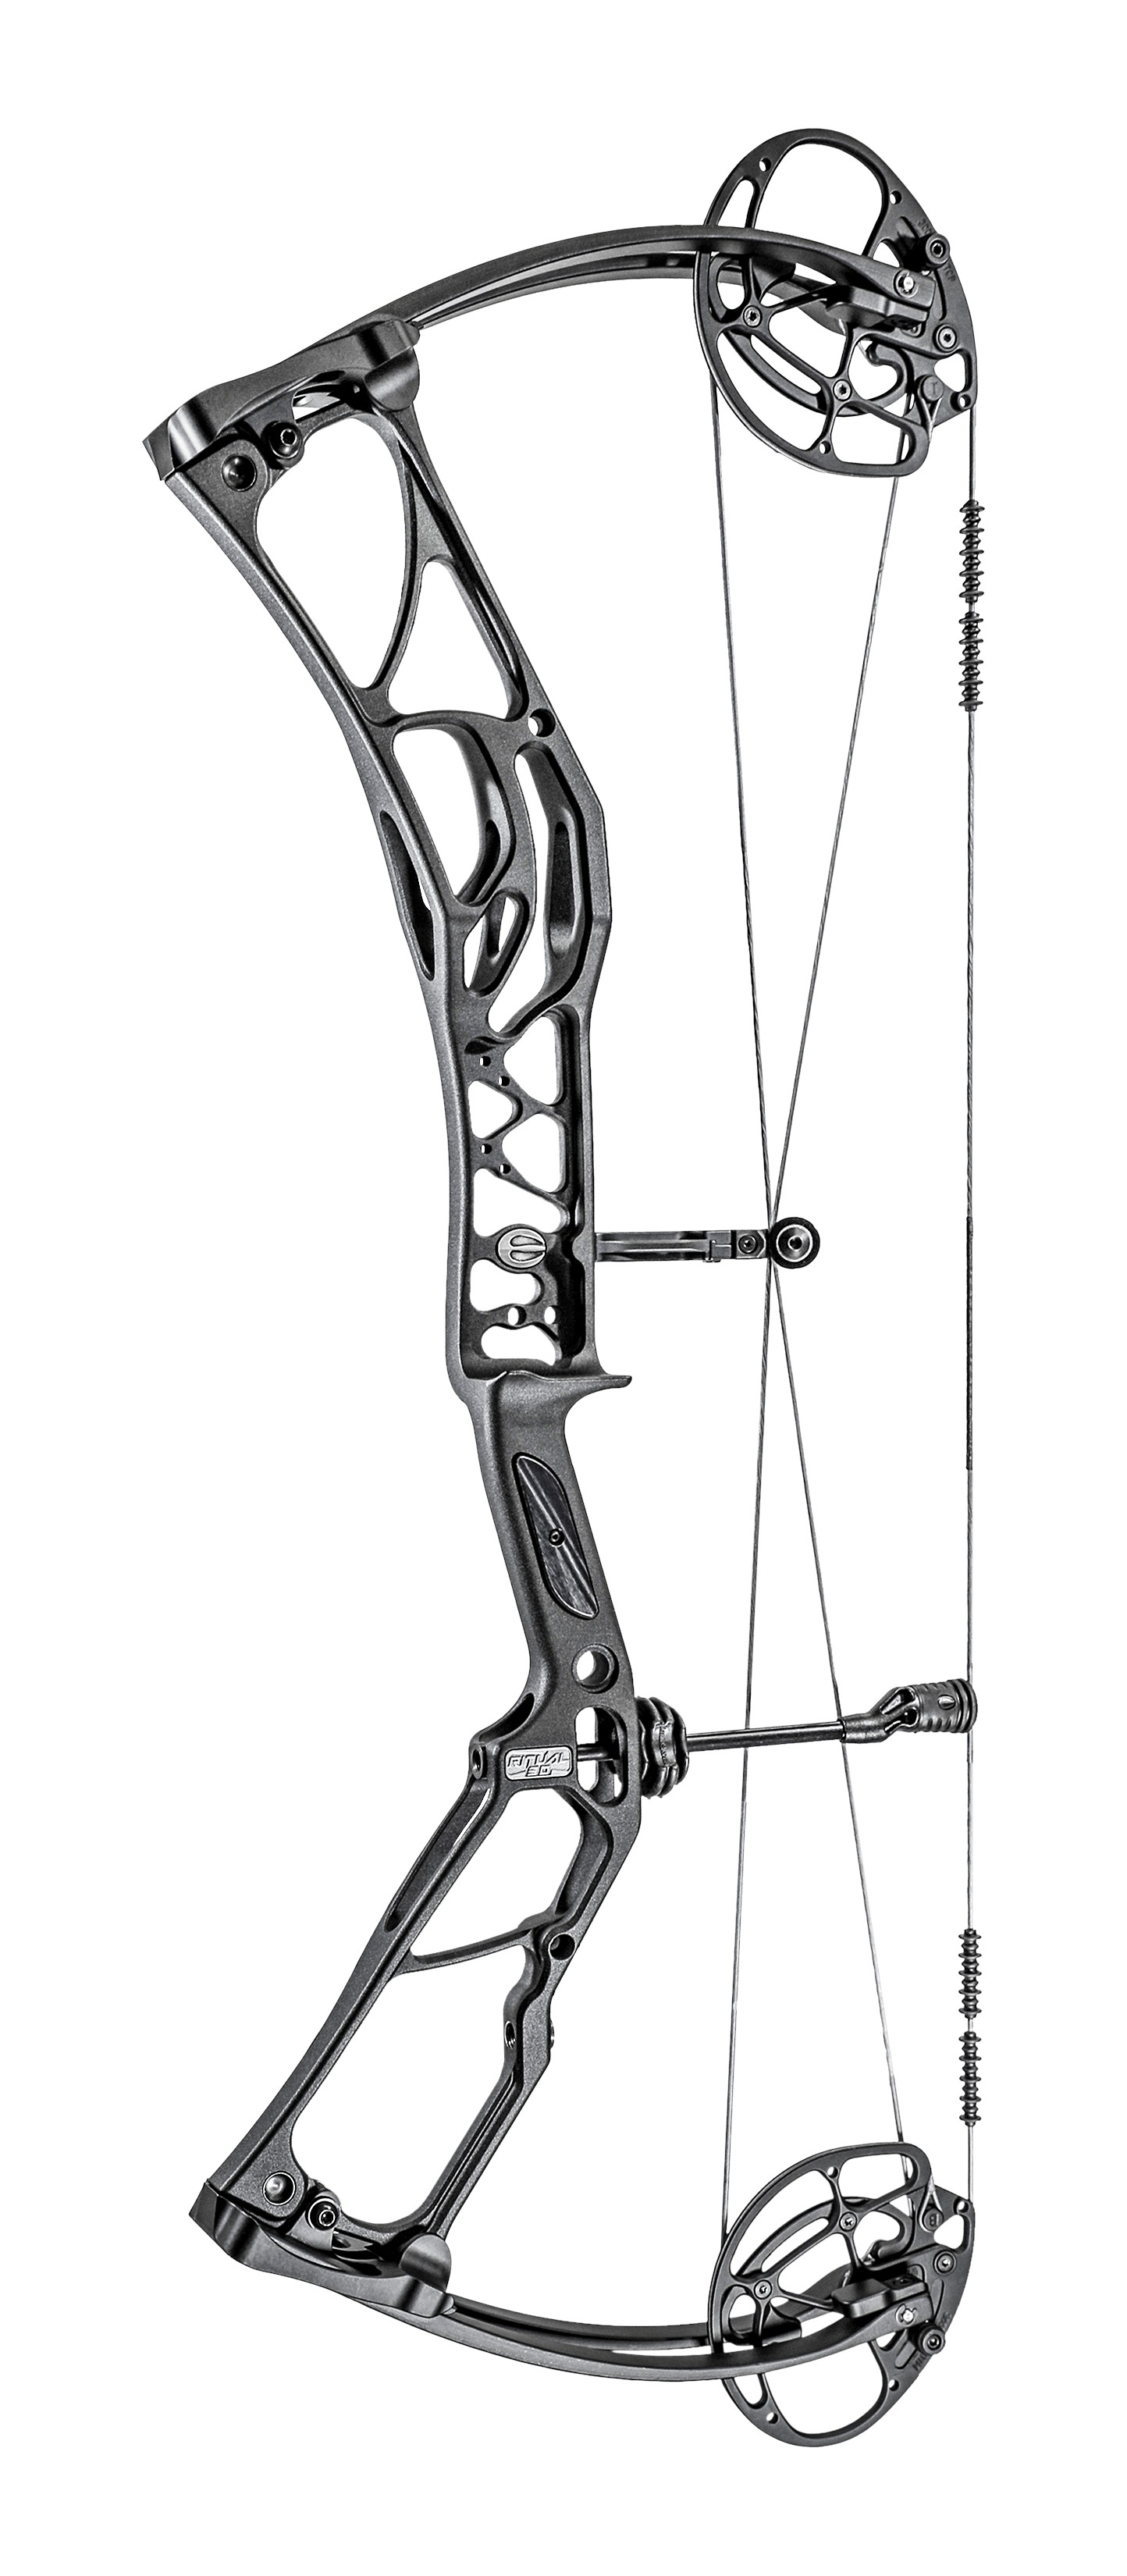 1444x3300 elite archery ritual compound bow from the archery shop